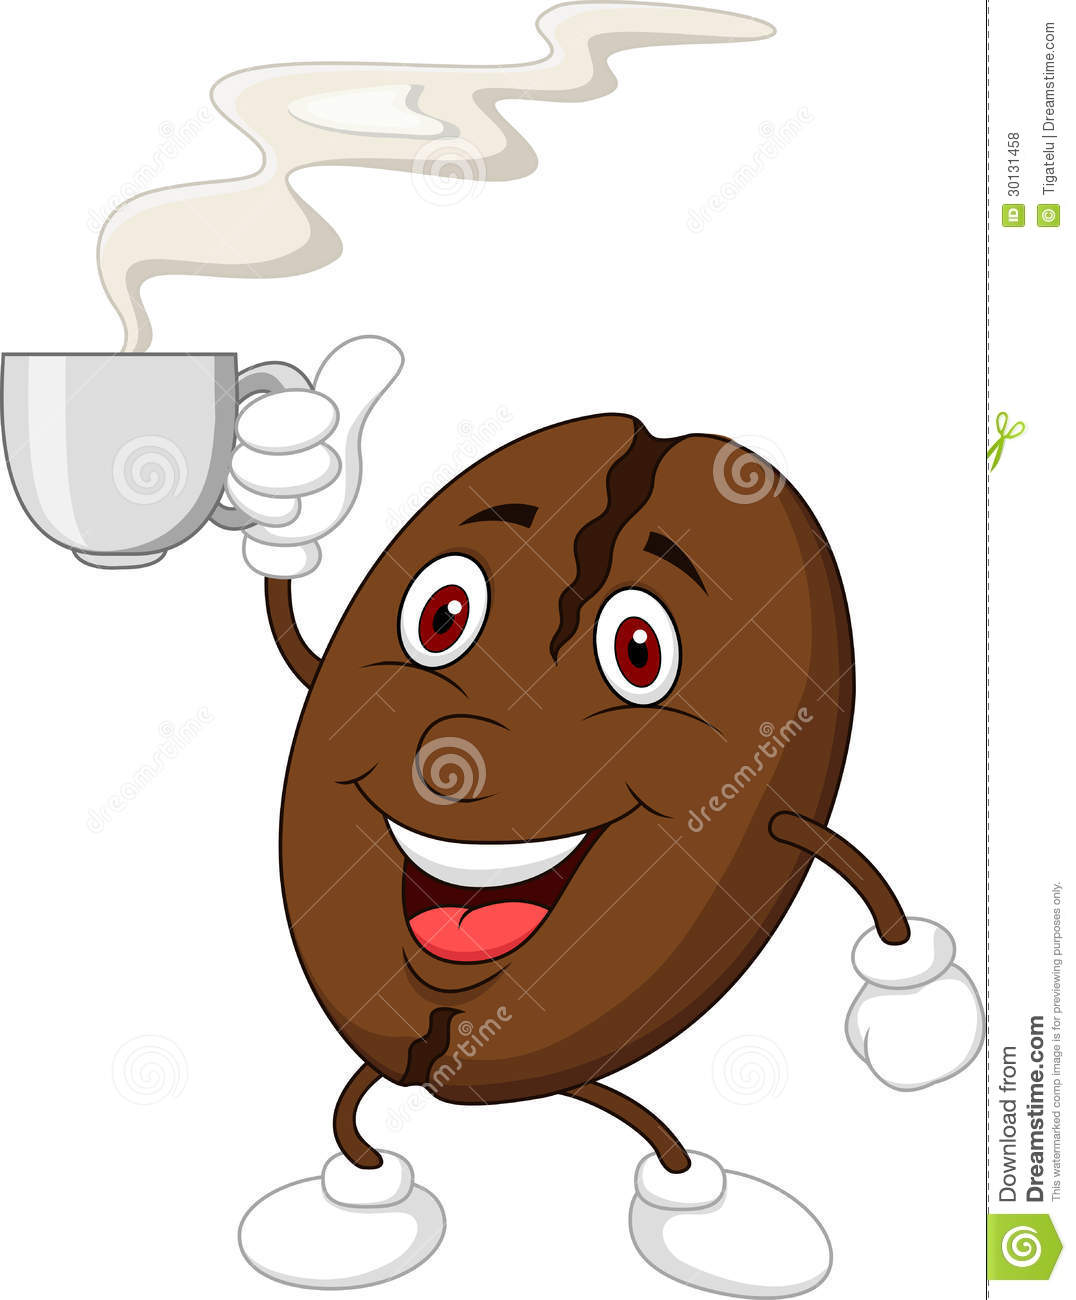 Illustration of cute coffee bean cartoon character with a coffee cup.